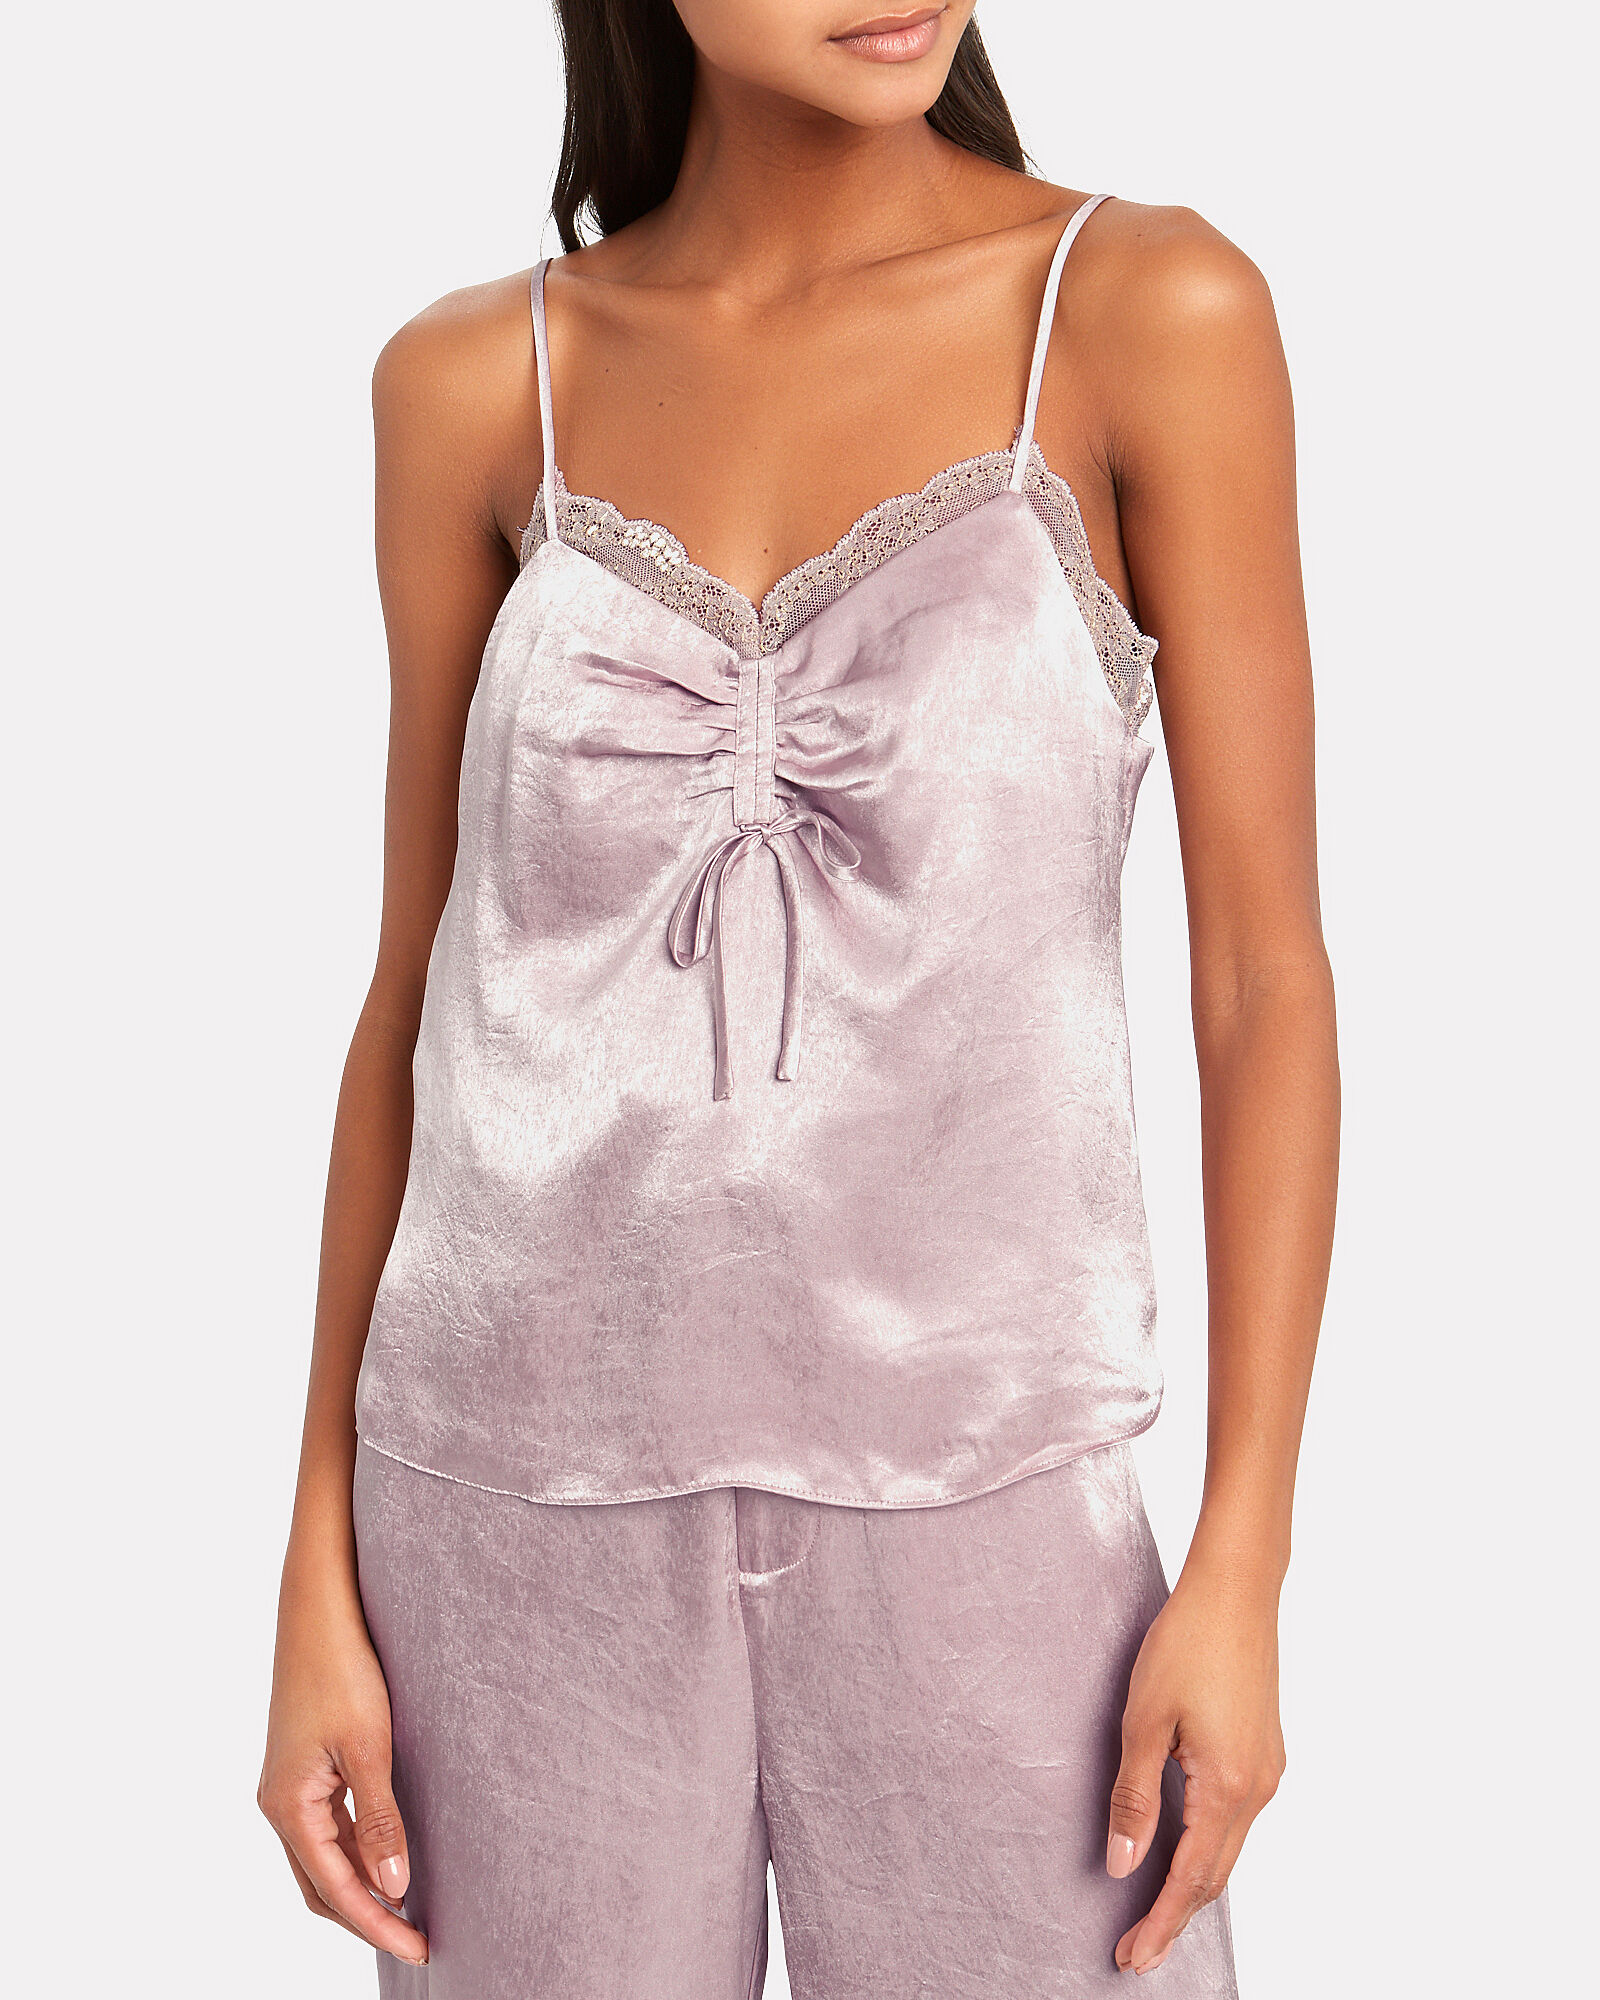 Lace-Trimmed Satin Camisole, PALE PINK, hi-res